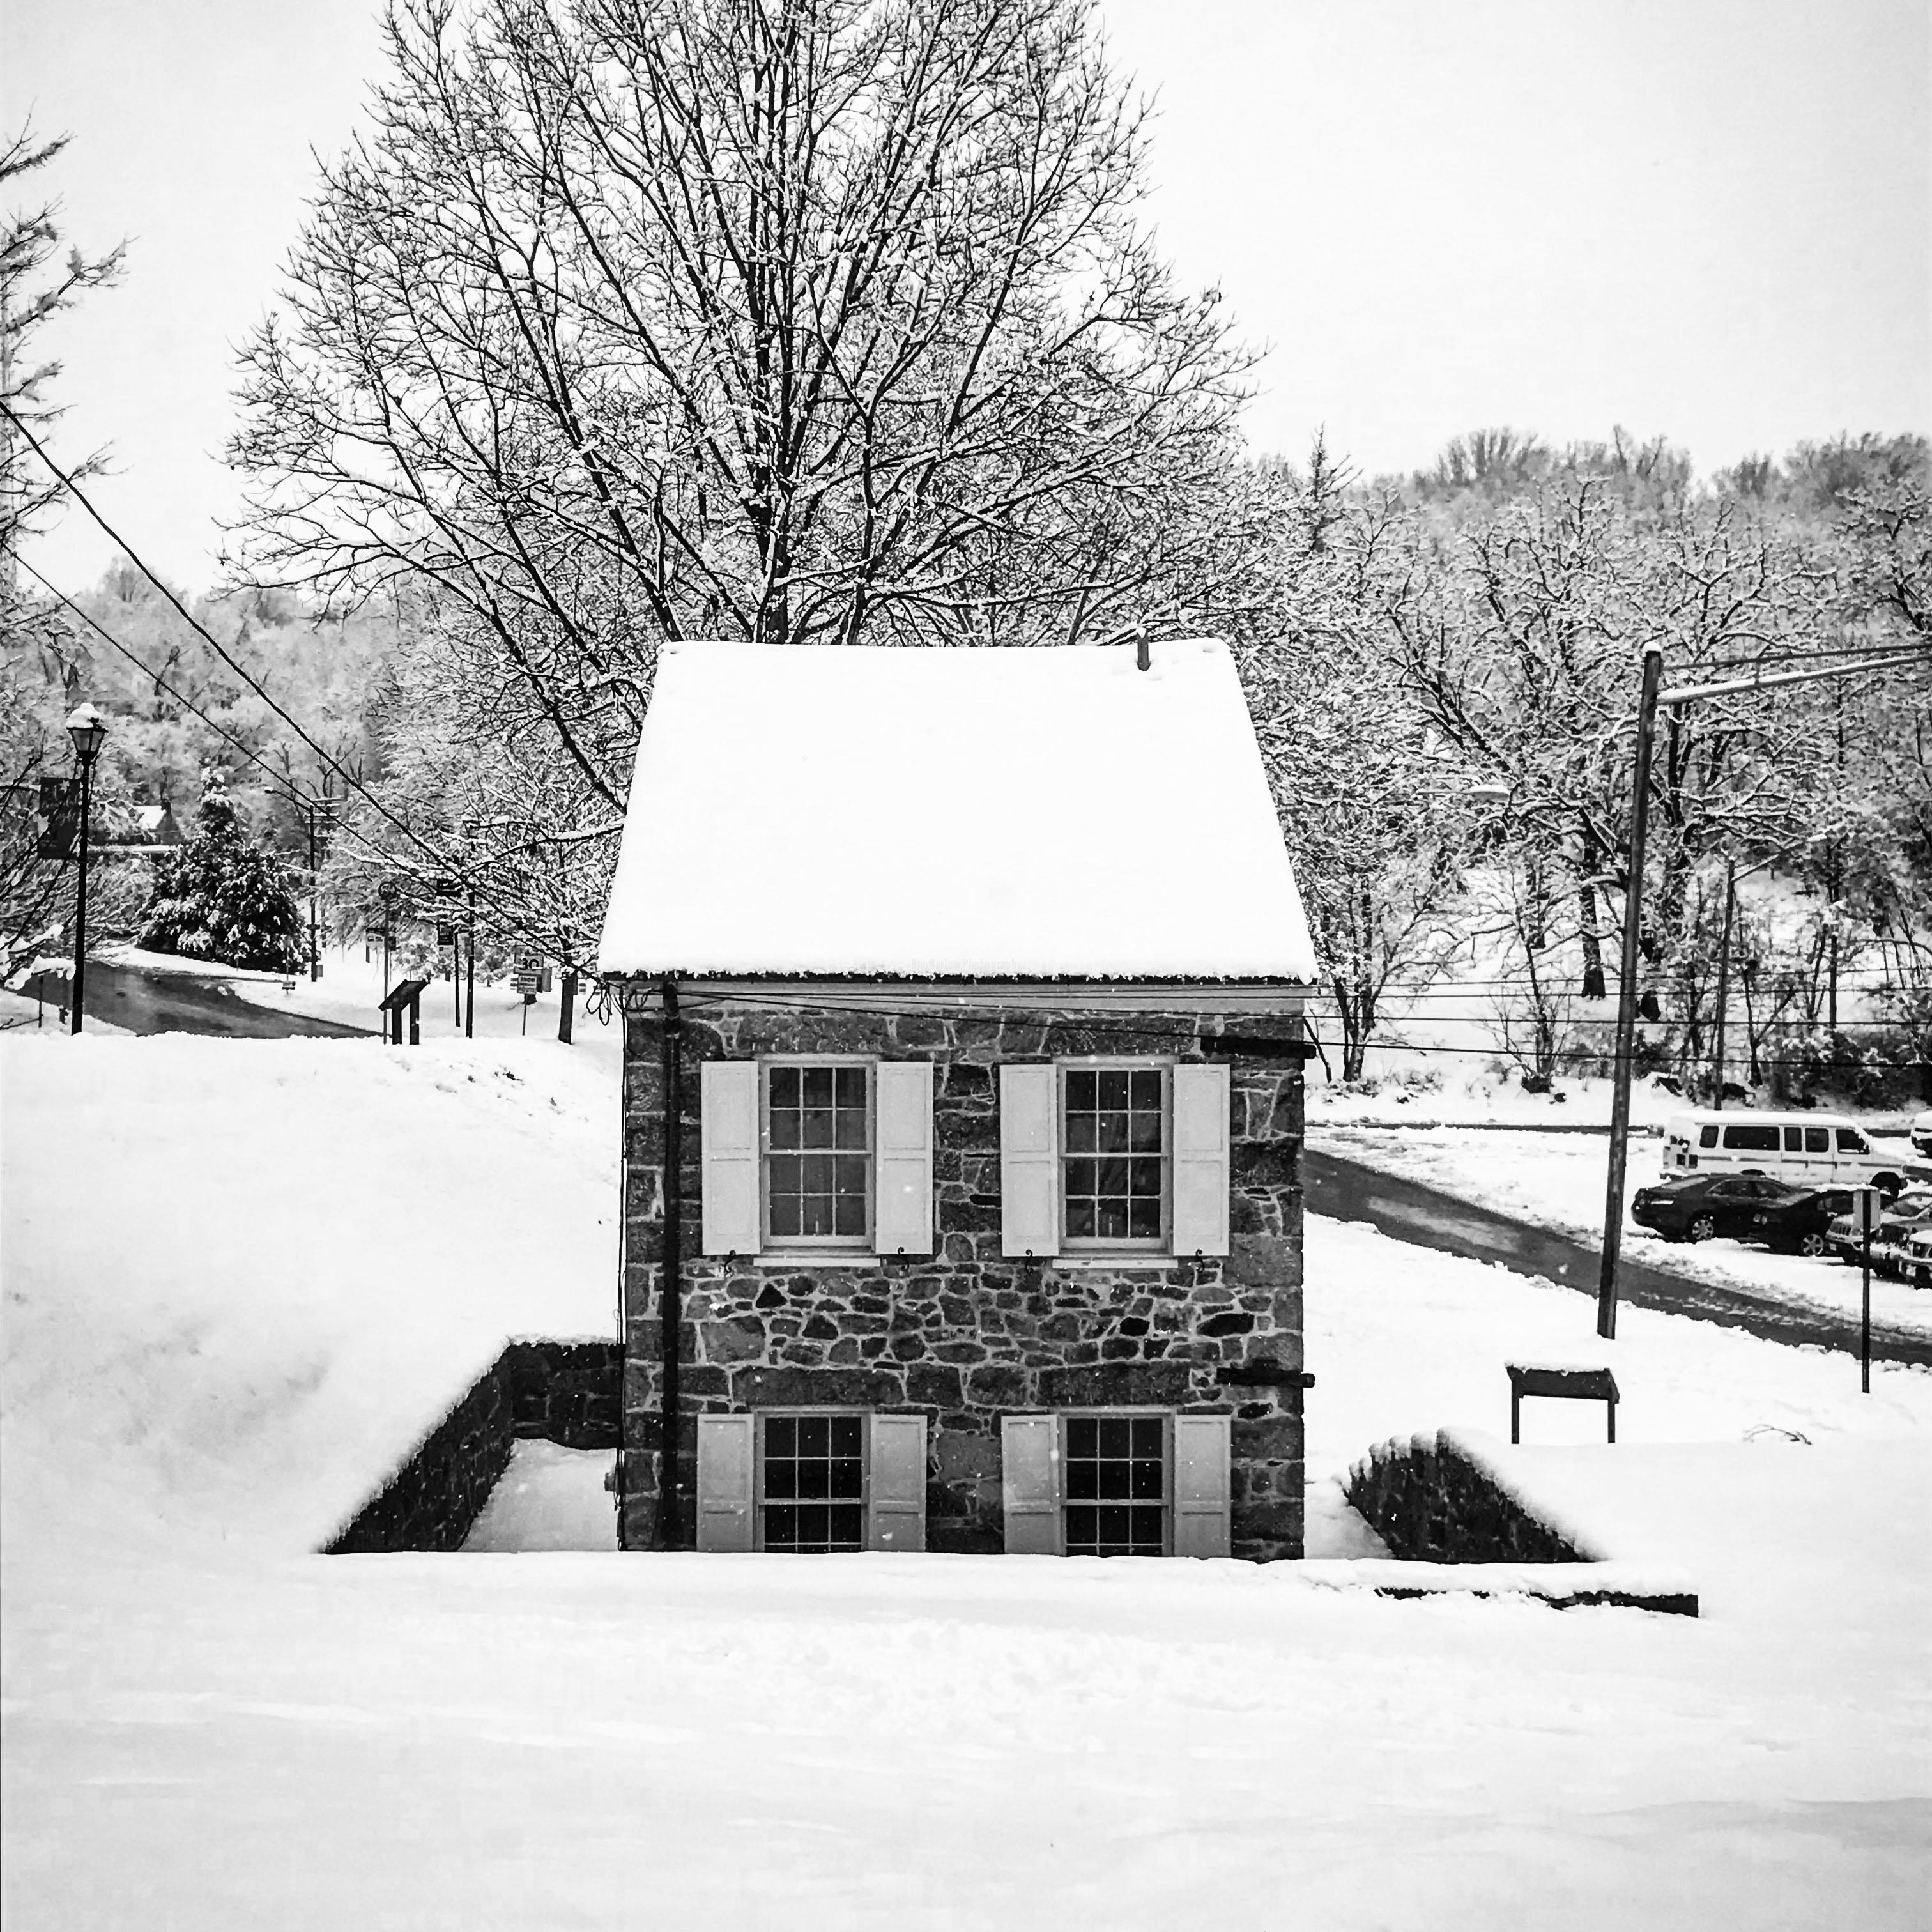 The Old Courthouse, Ellicott City, Md. (c.1840 - May 27, 2018)